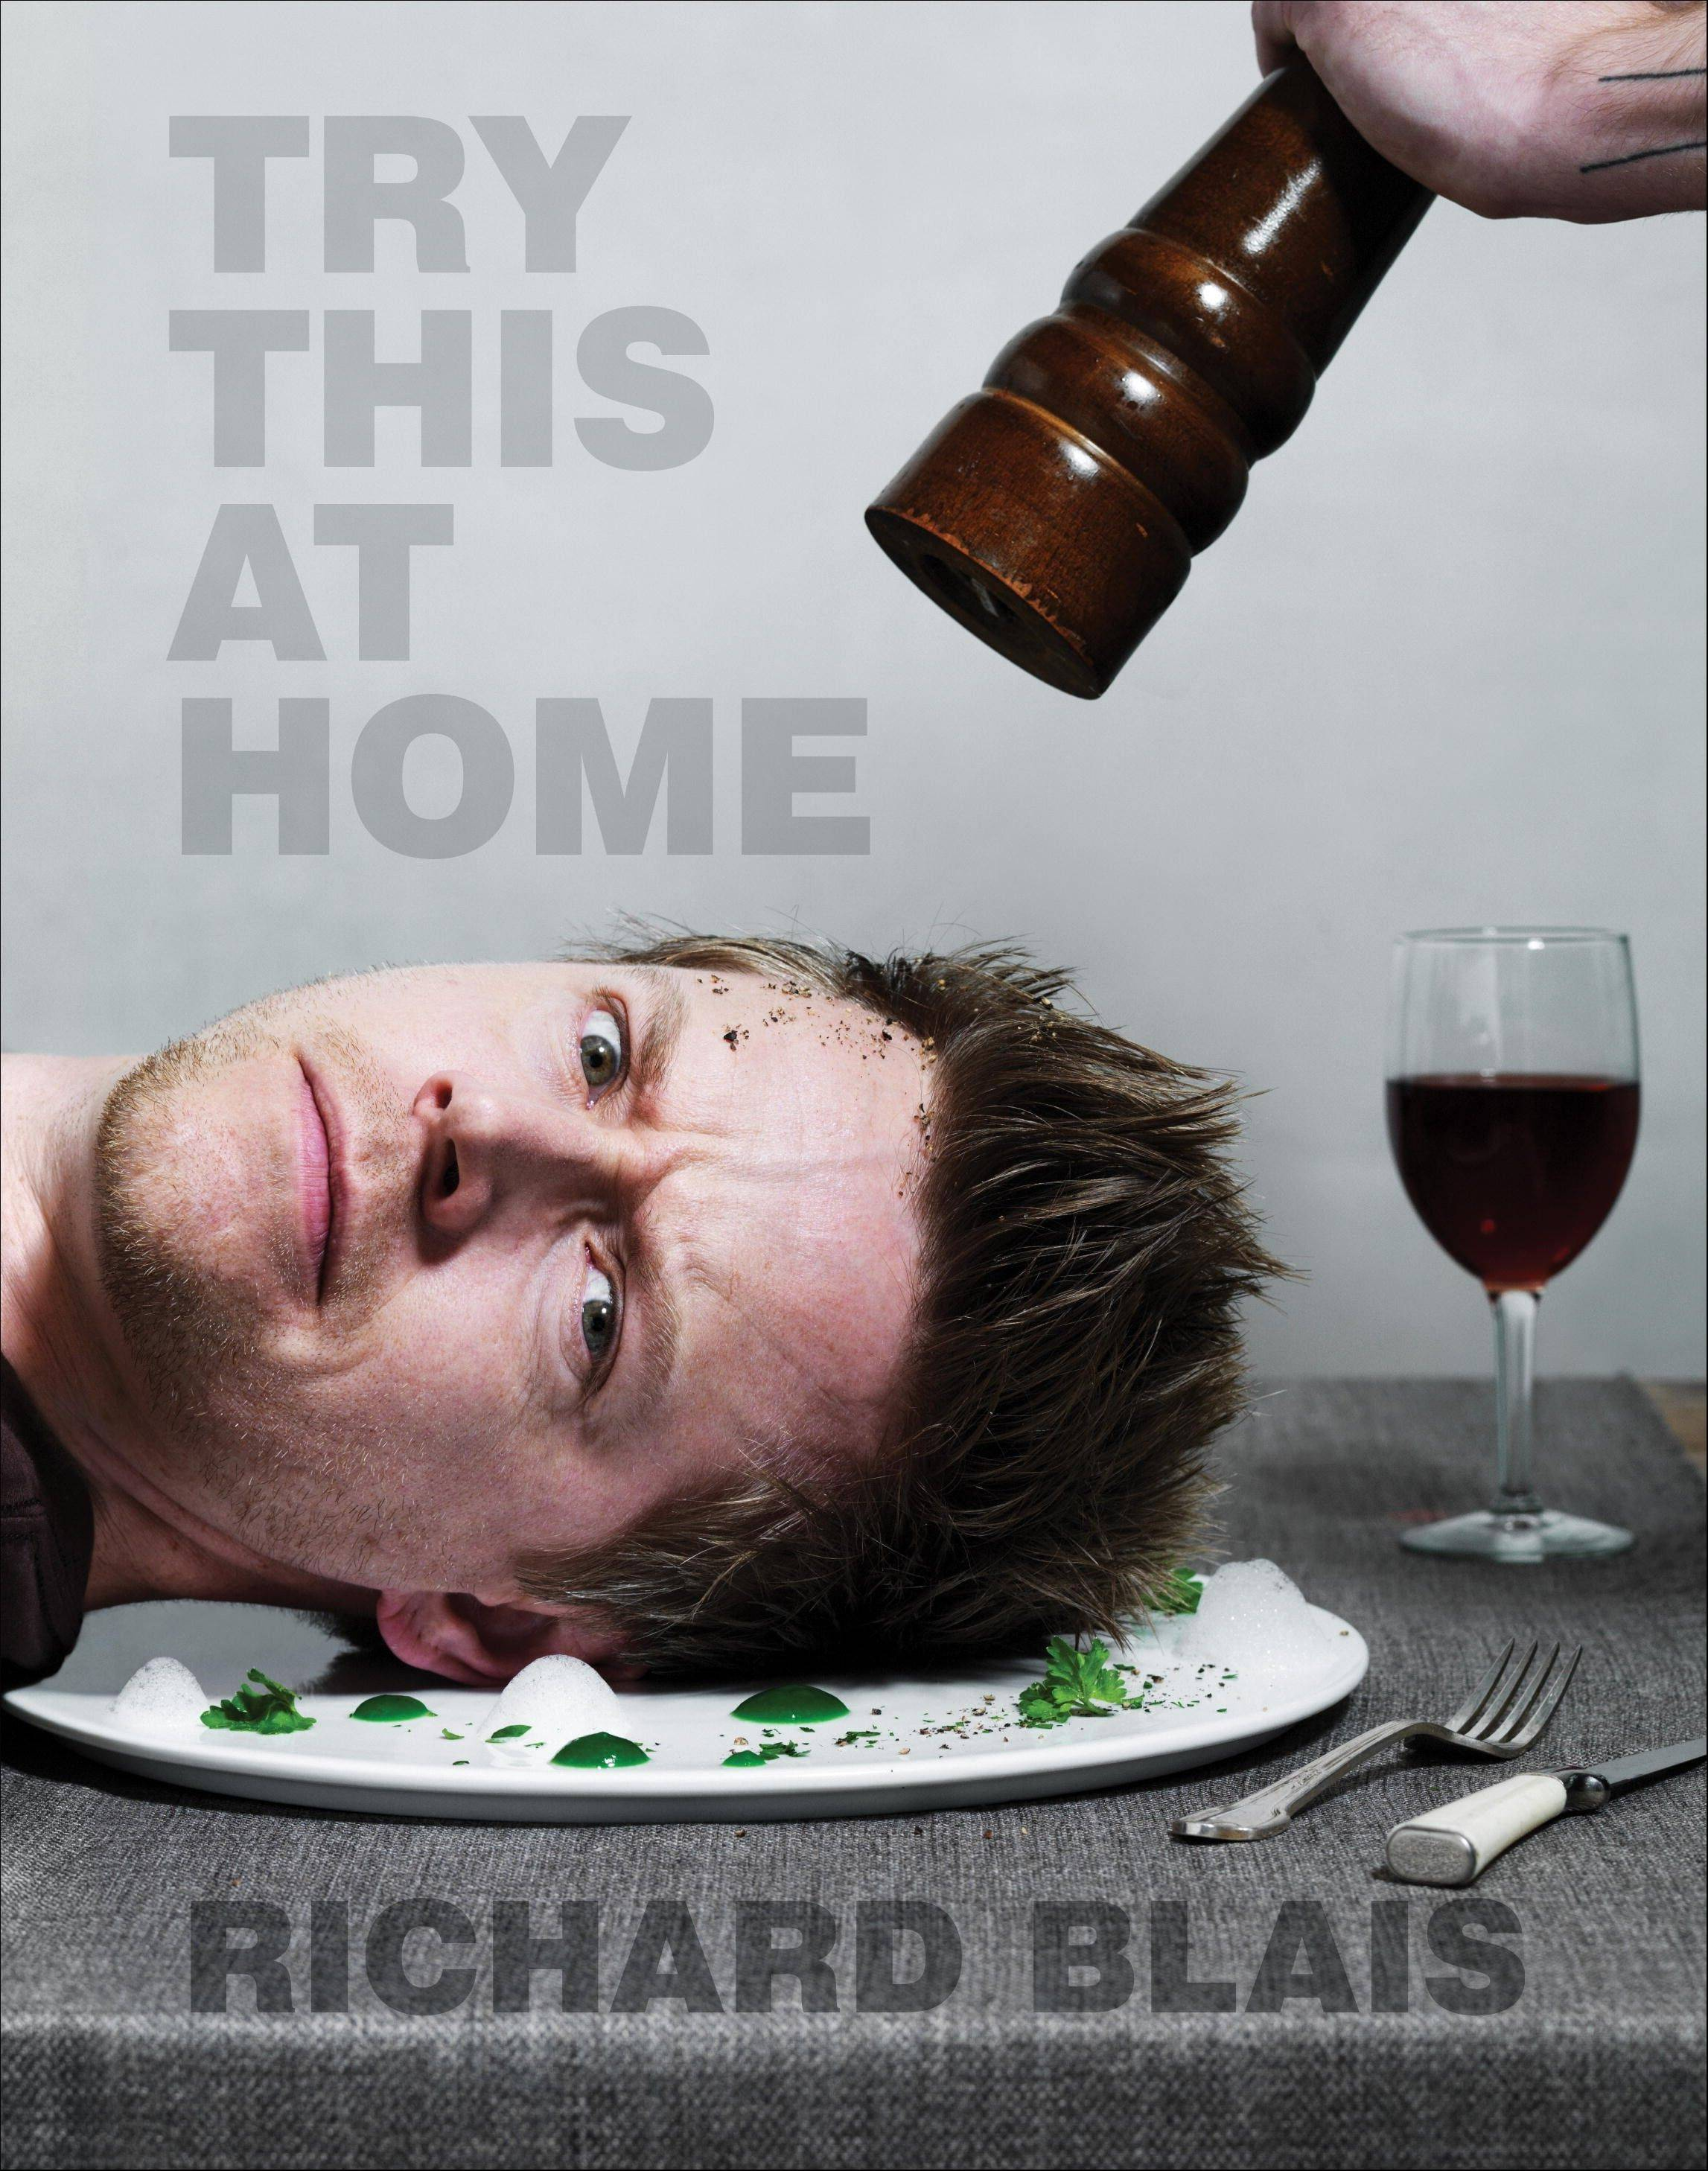 """Try This at Home"" by Richard Blais"